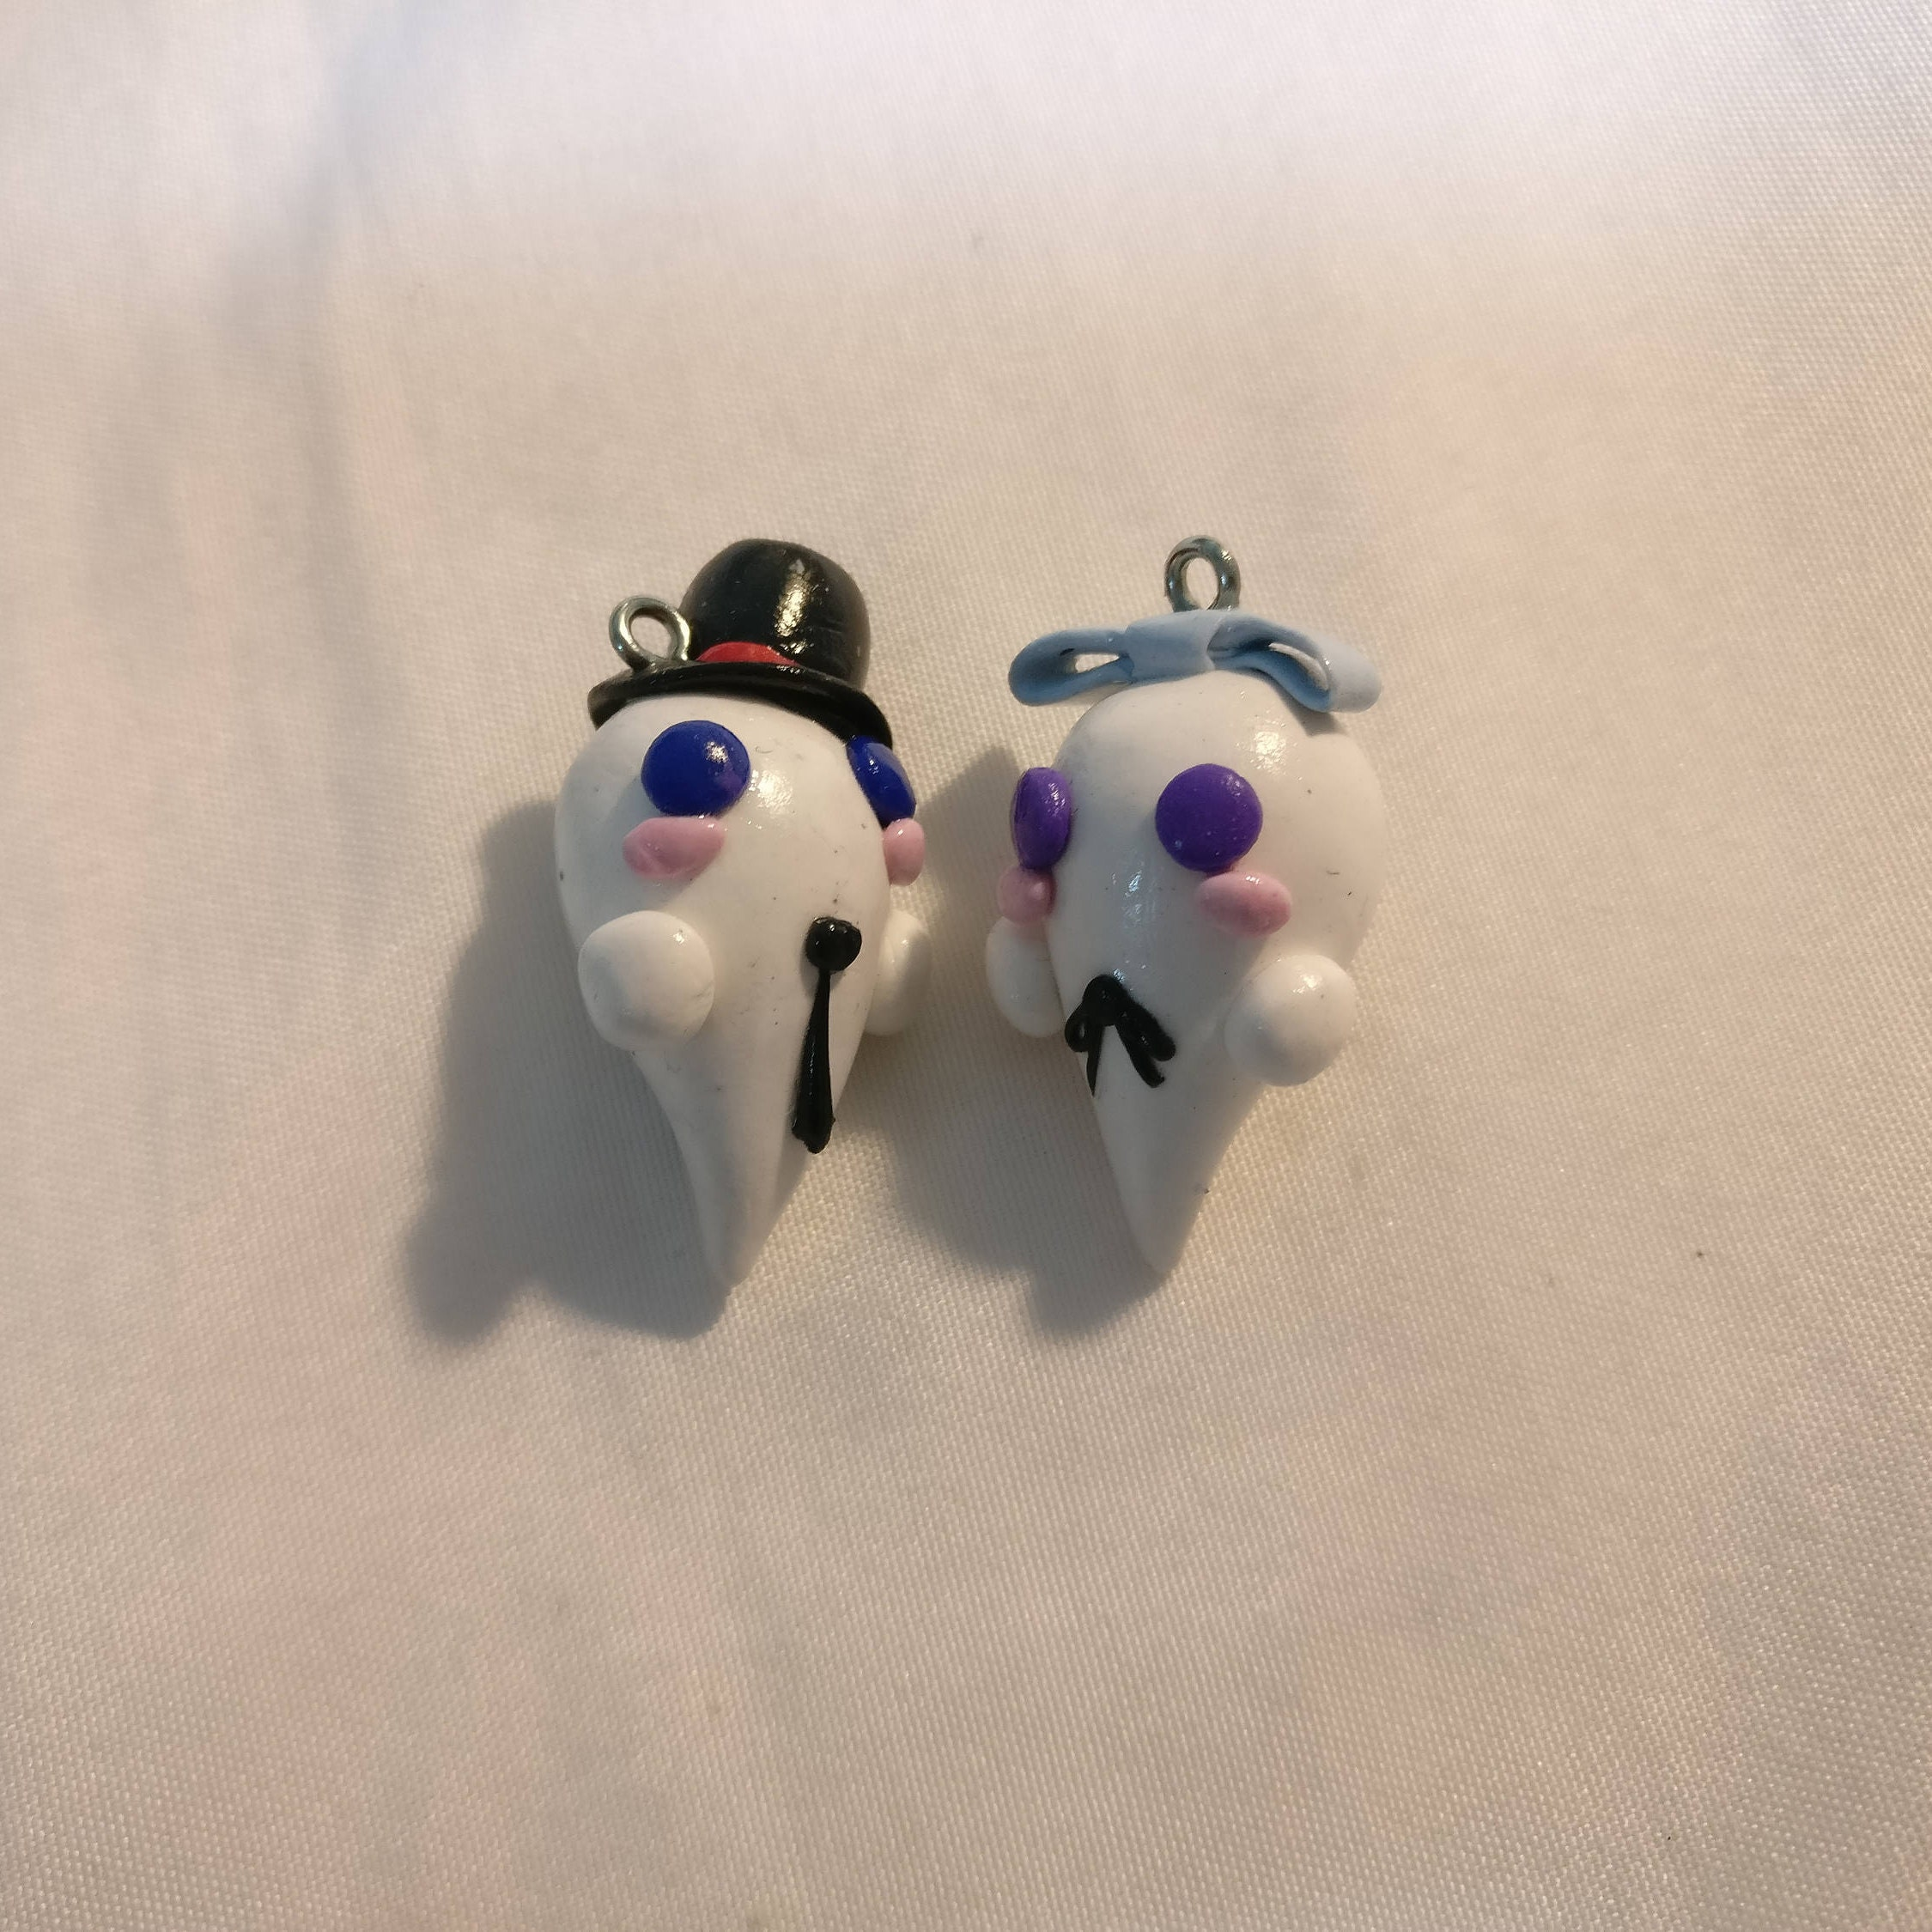 2 halloween miniature ghost polymer clay charms   etsy